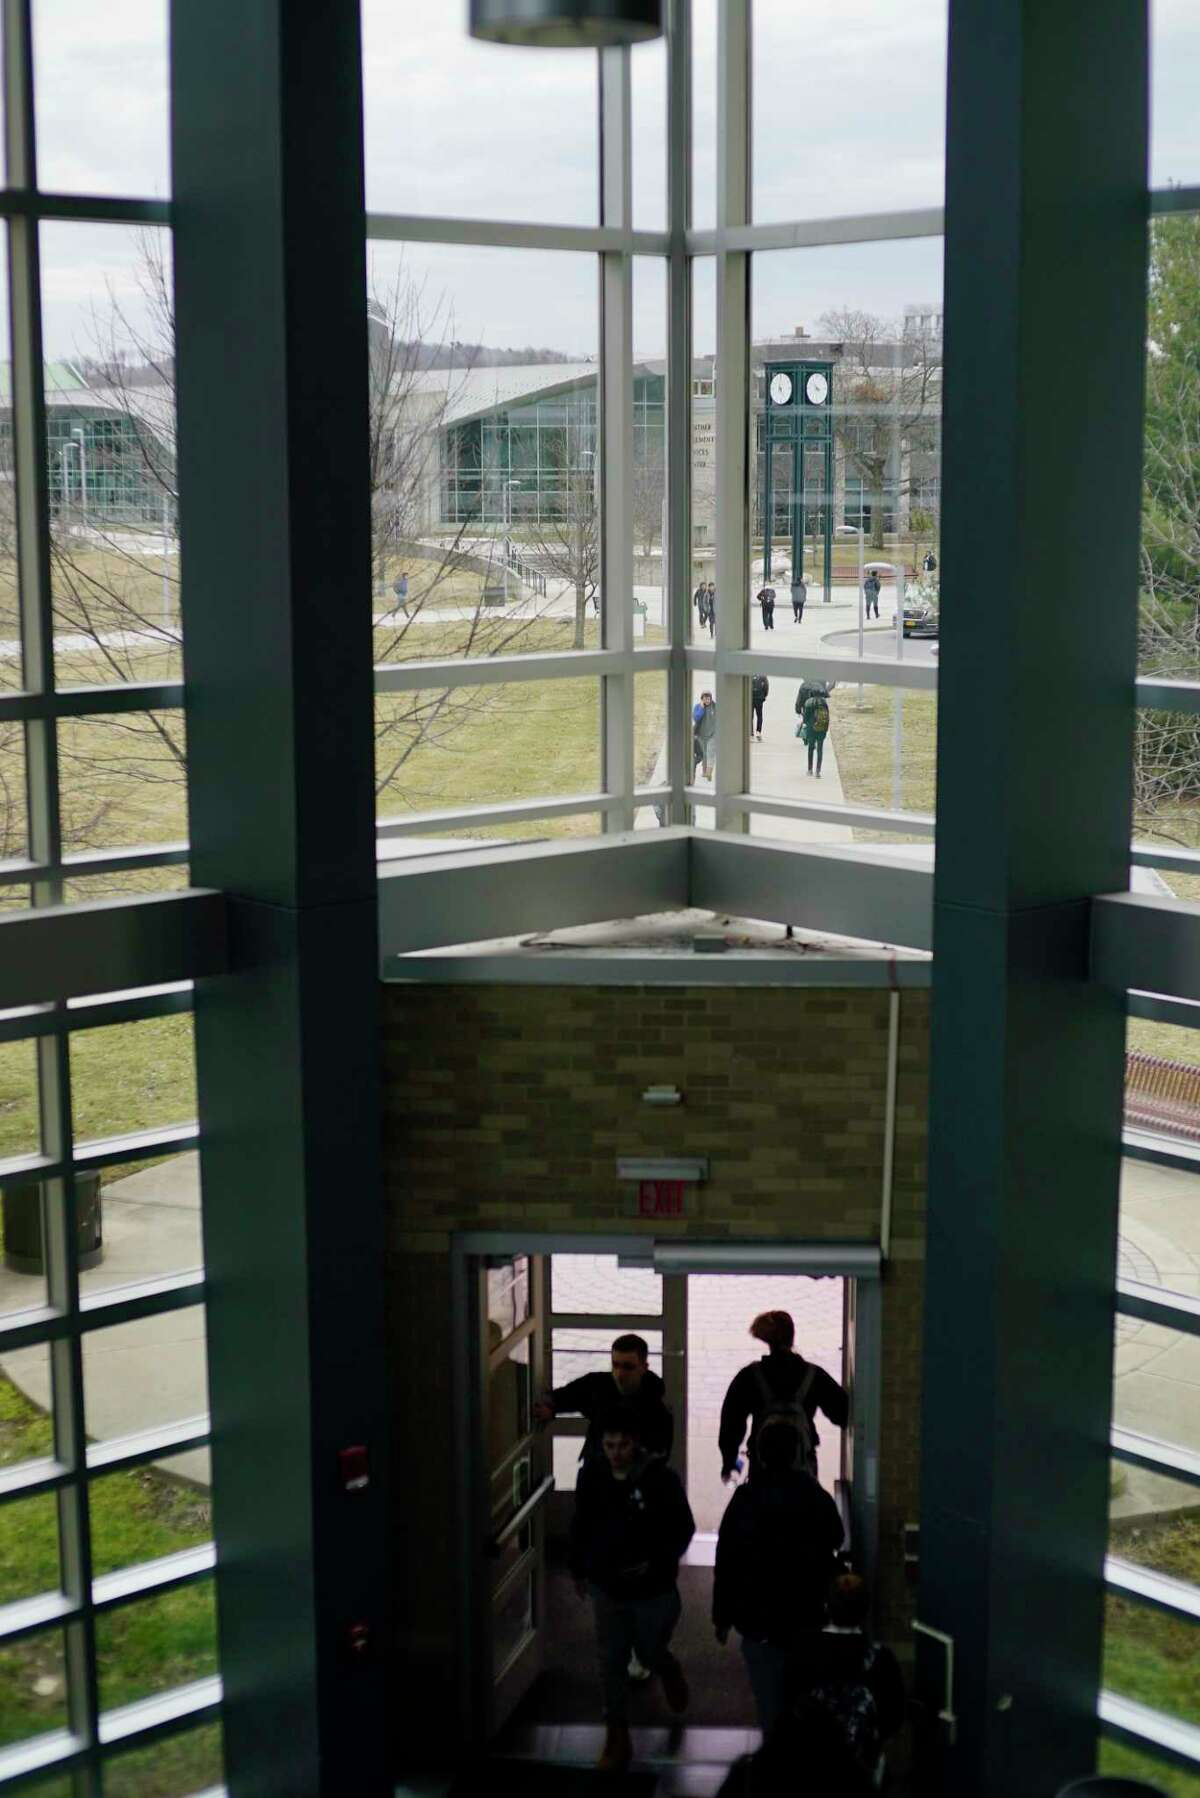 Students make their way between classes at Hudson Valley Community College on Monday, March 2, 2020, in Troy, N.Y. (Paul Buckowski/Times Union)